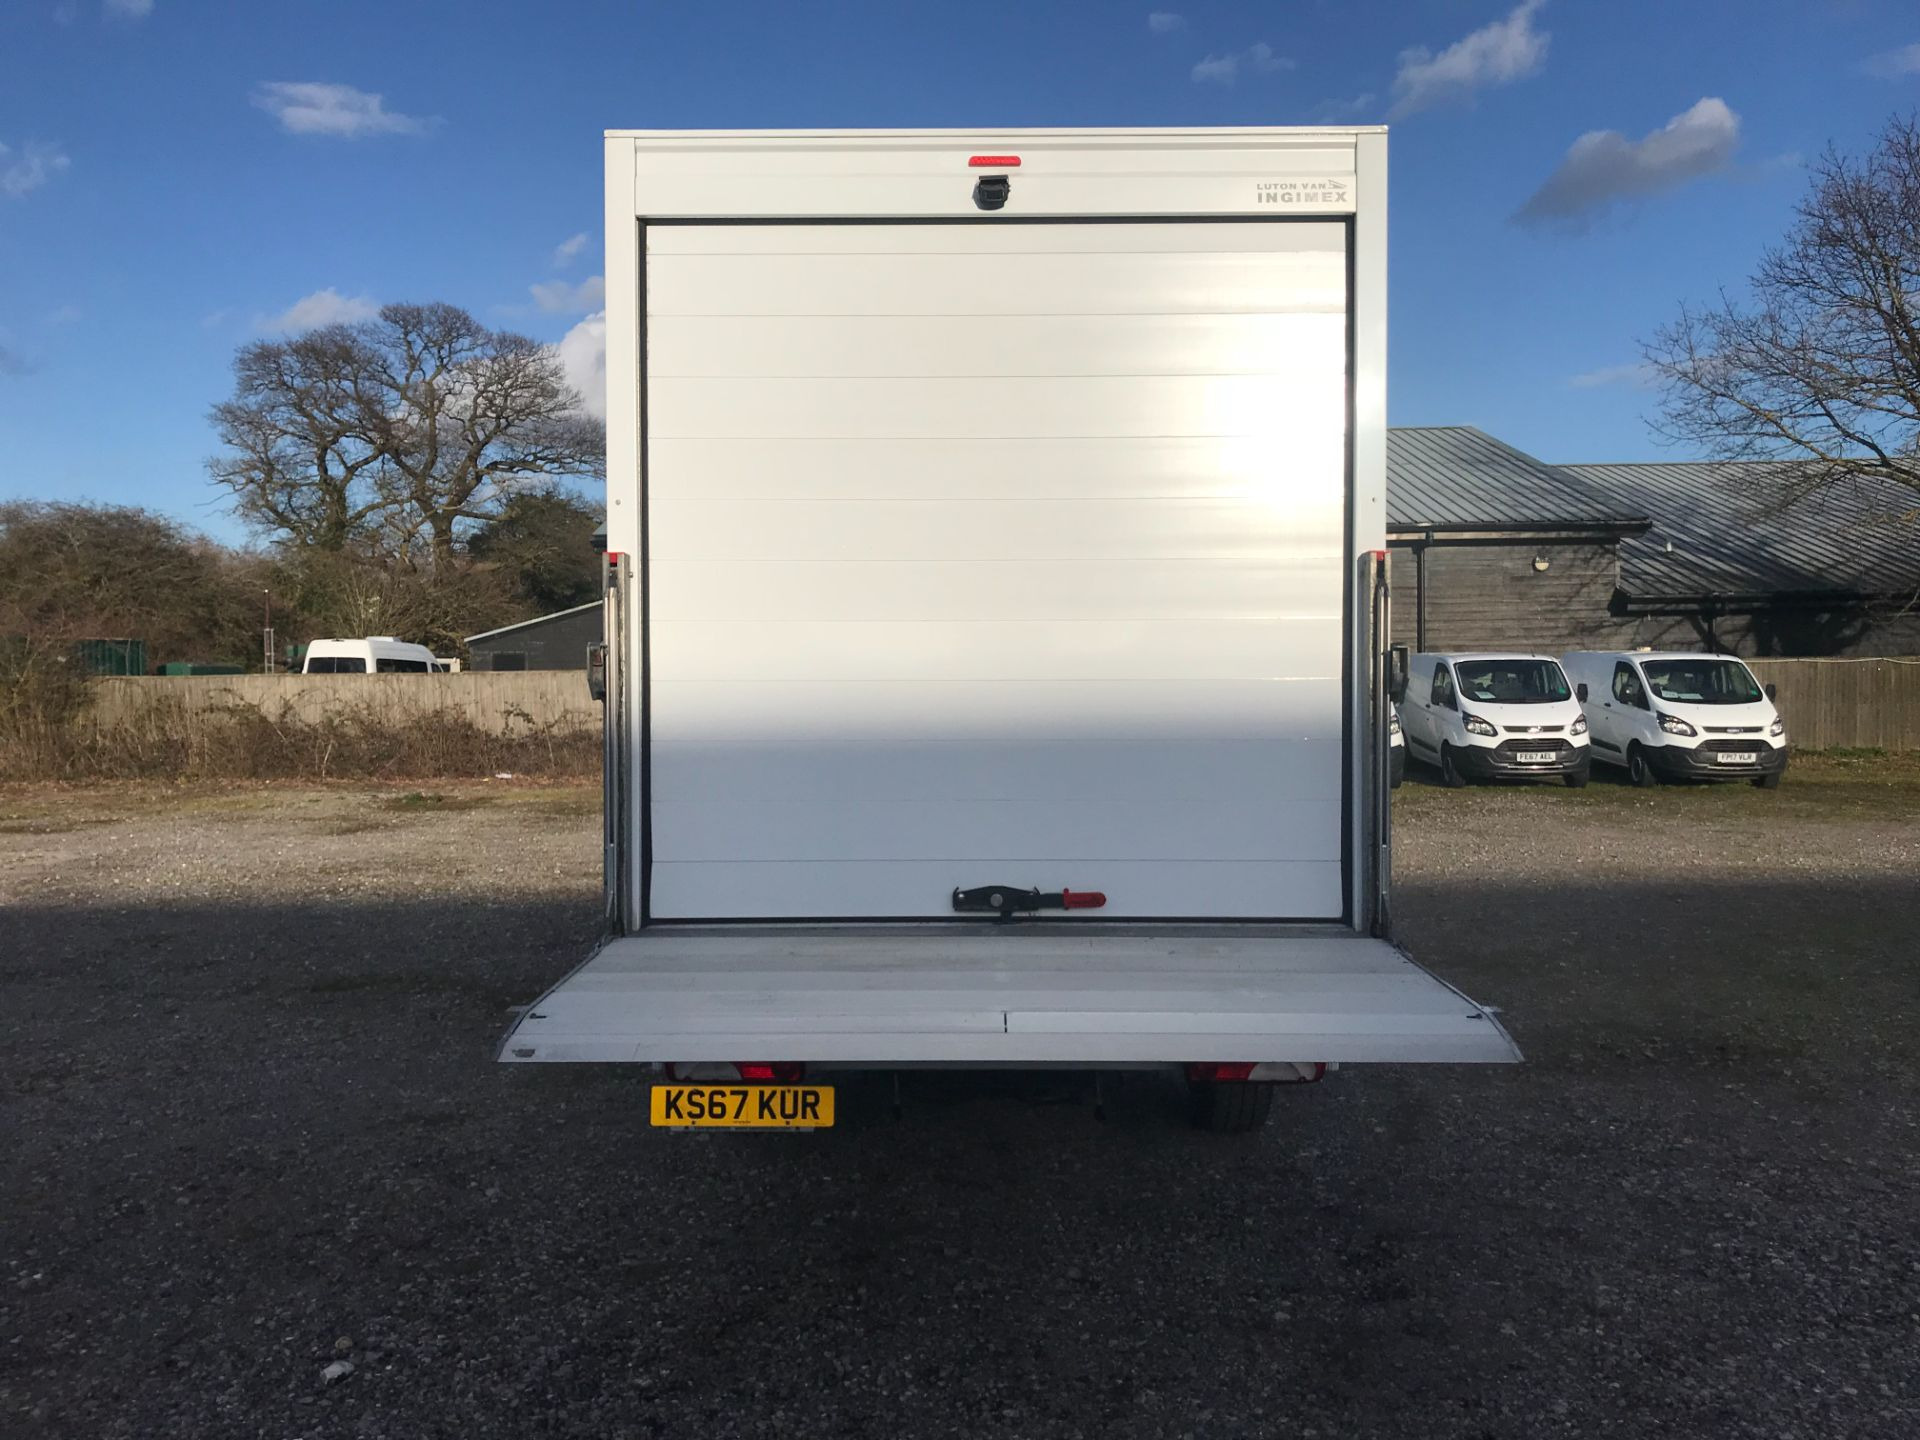 2018 Mercedes-Benz Sprinter 314 LWB LUTON EURO 6 With Tail Lift (KS67KUR) Thumbnail 33